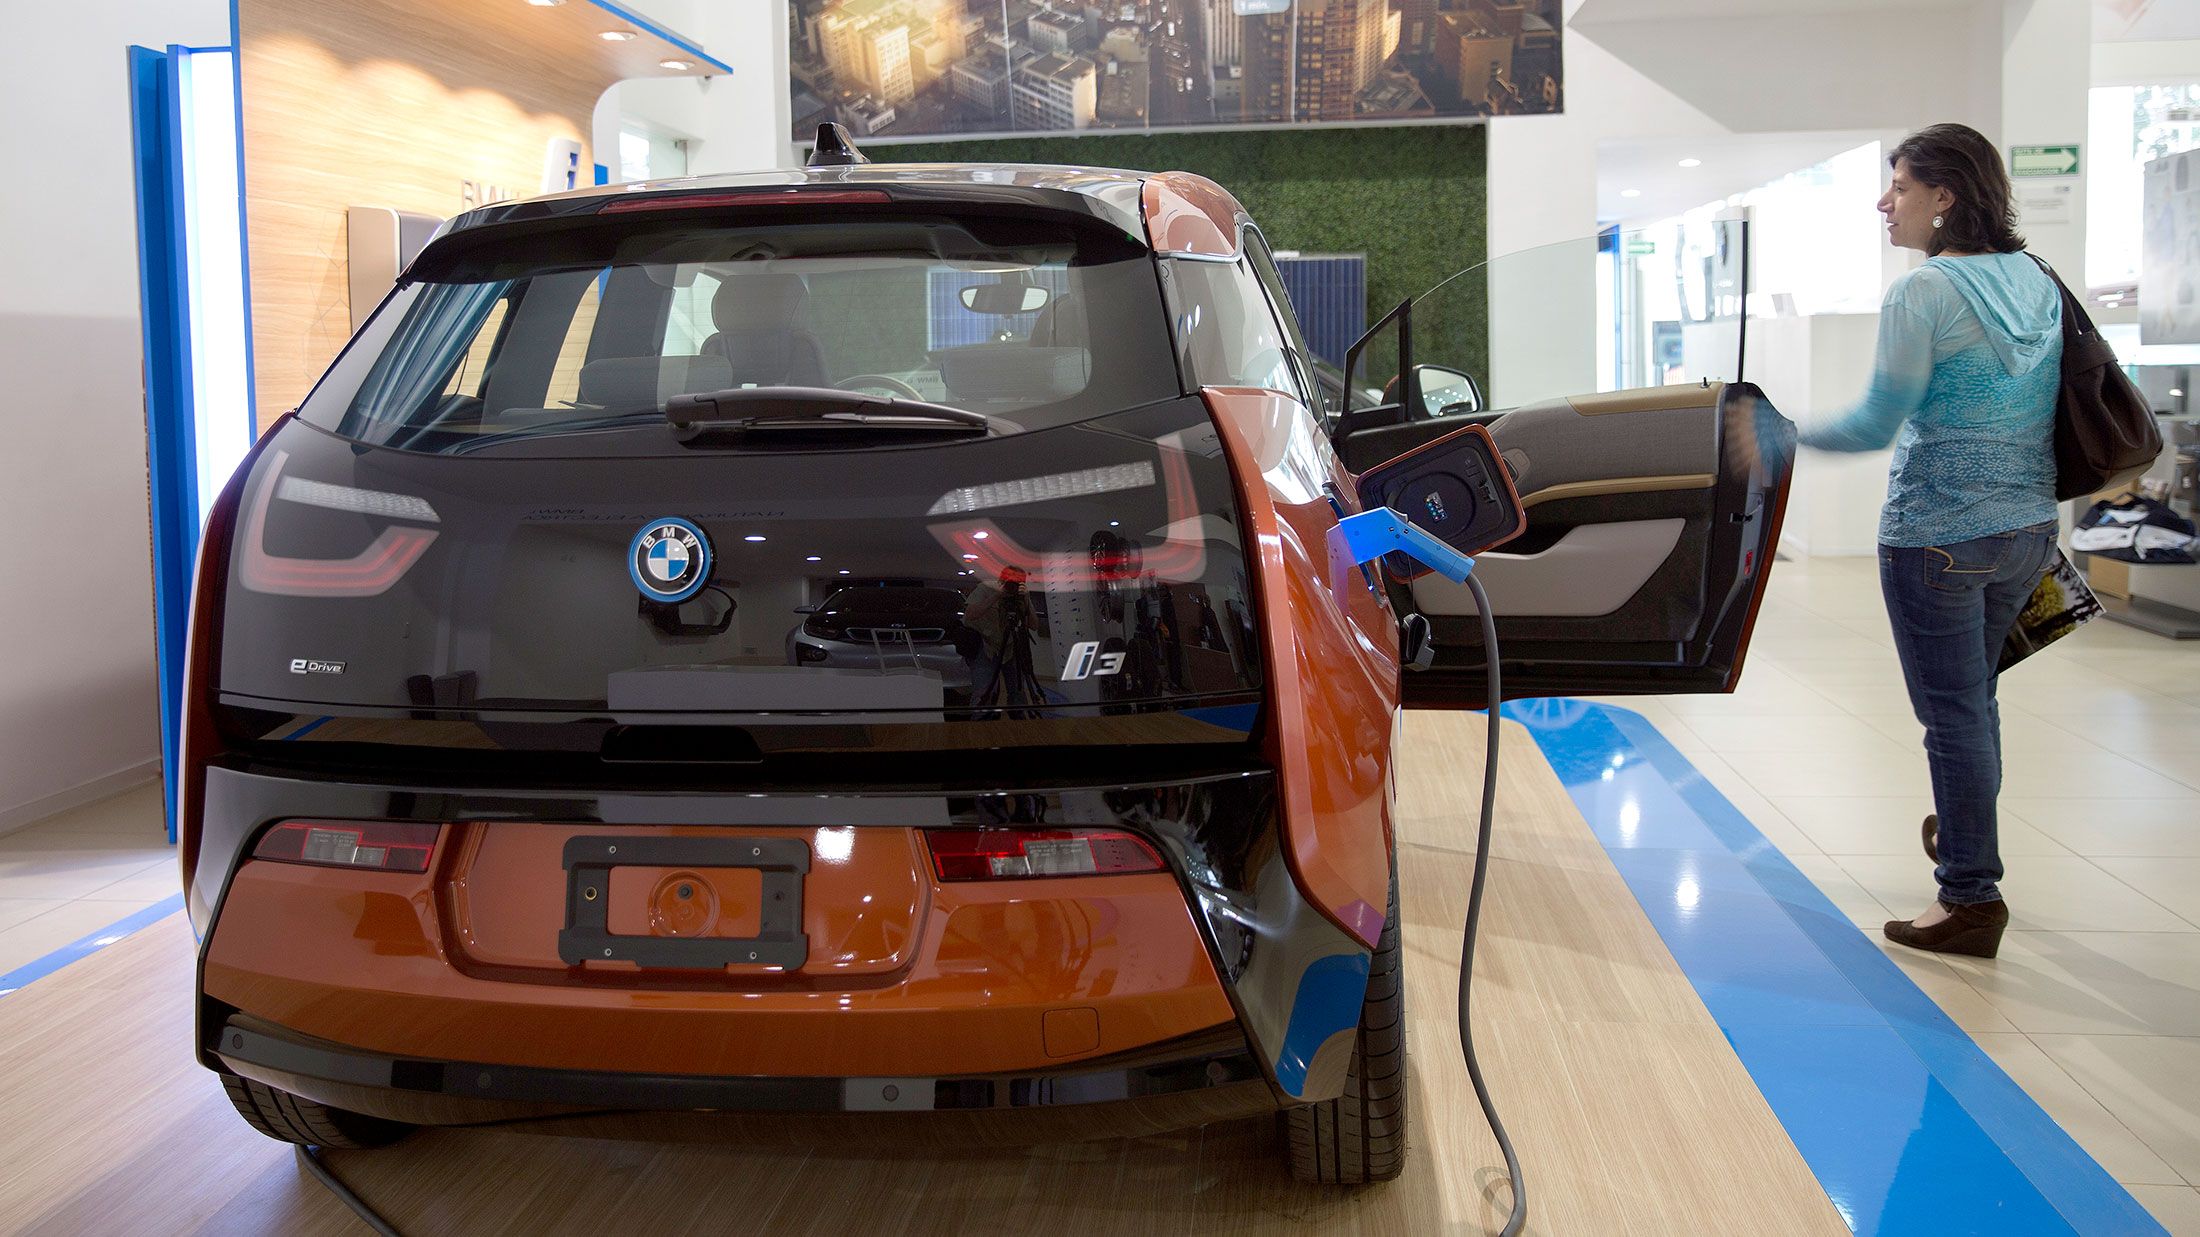 BMW Drivers Get Paid $1000 to Delay Charging i3 Electric Cars